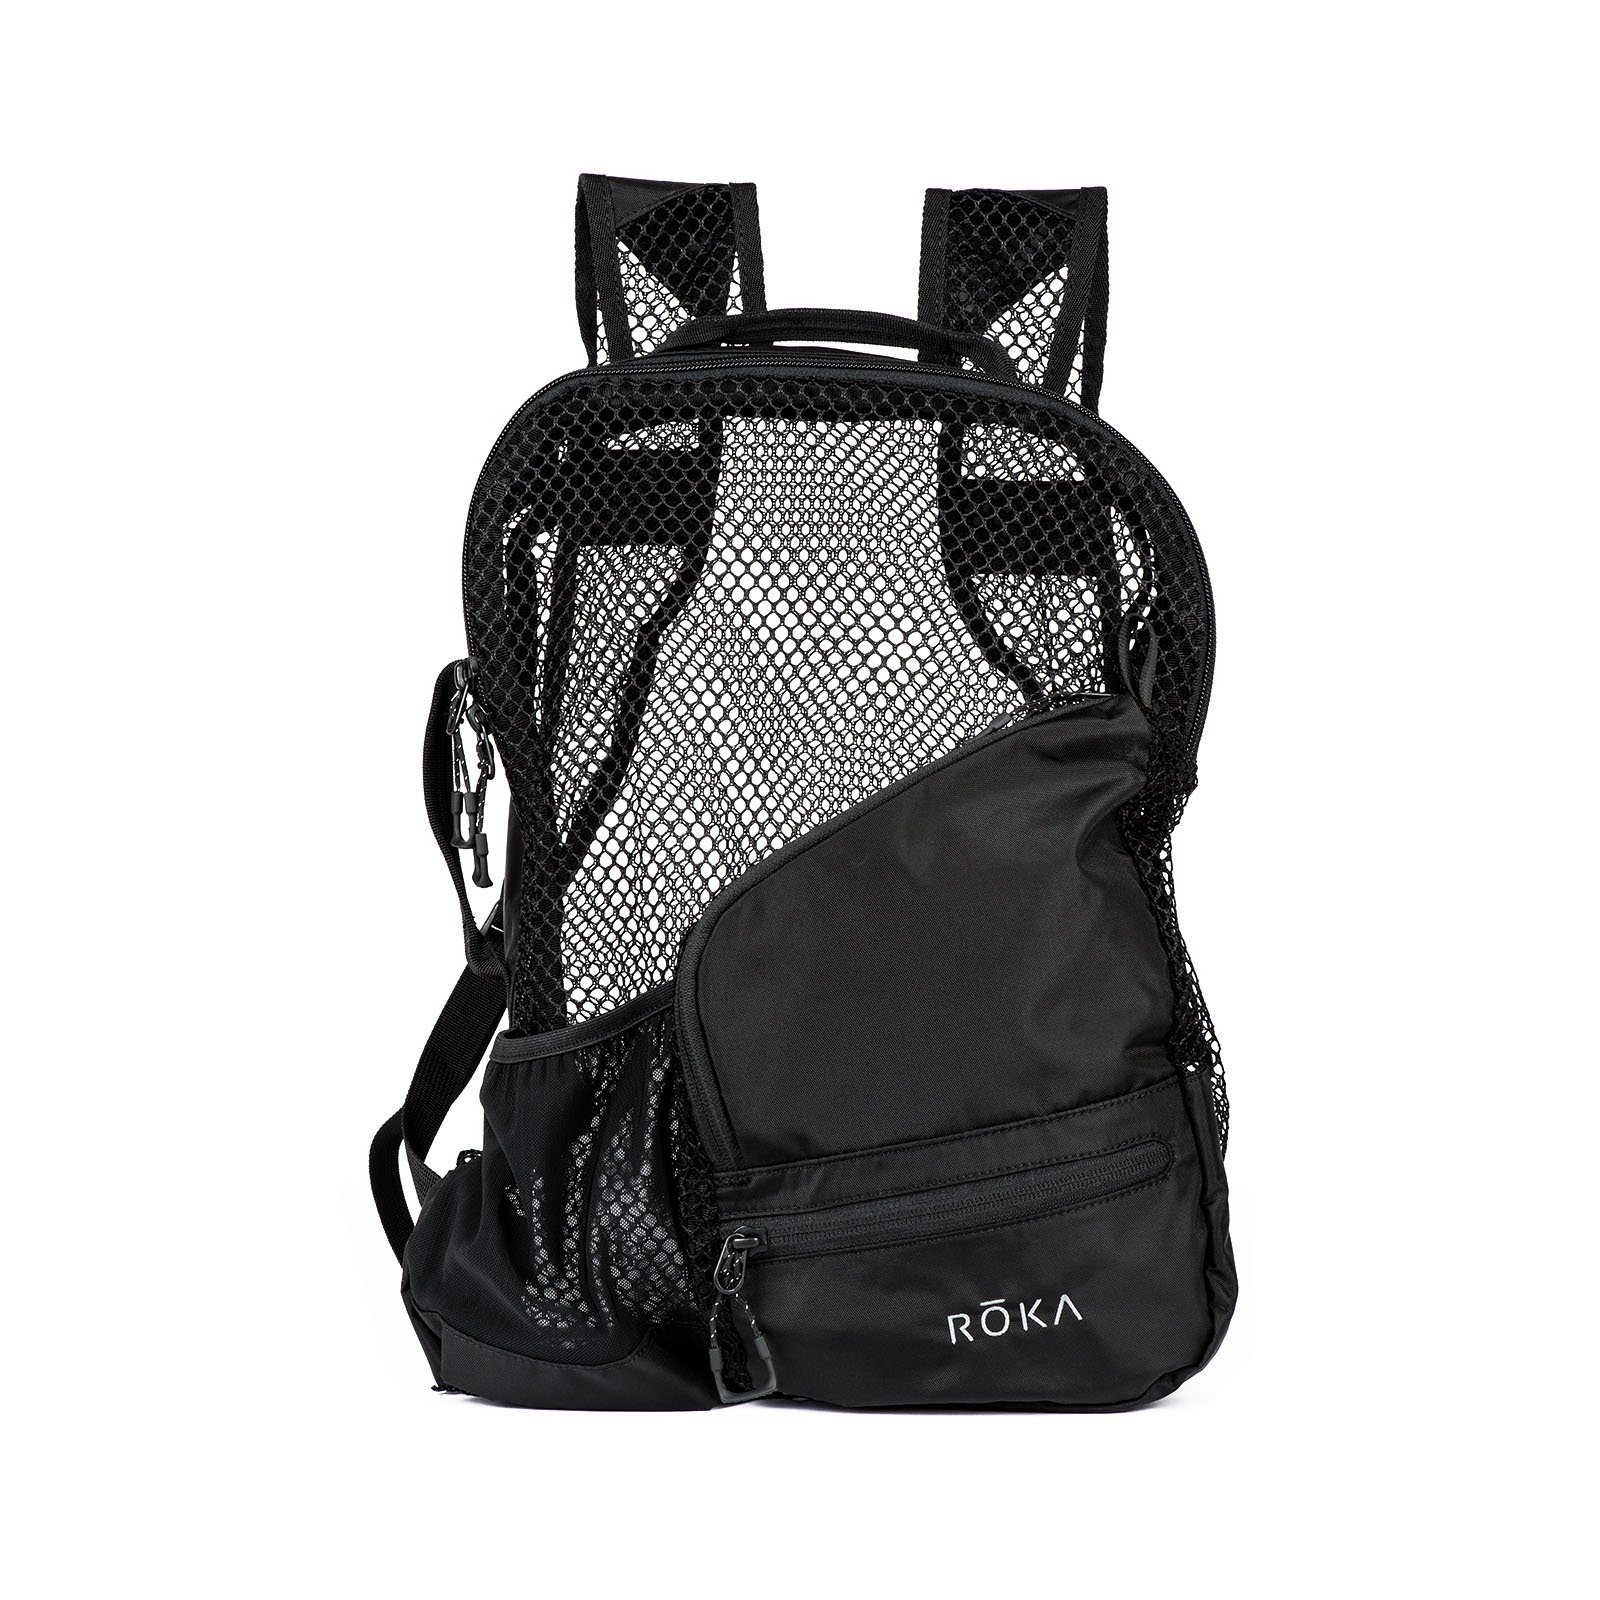 15 Liter Pro Vent Mesh Backpack Product Image